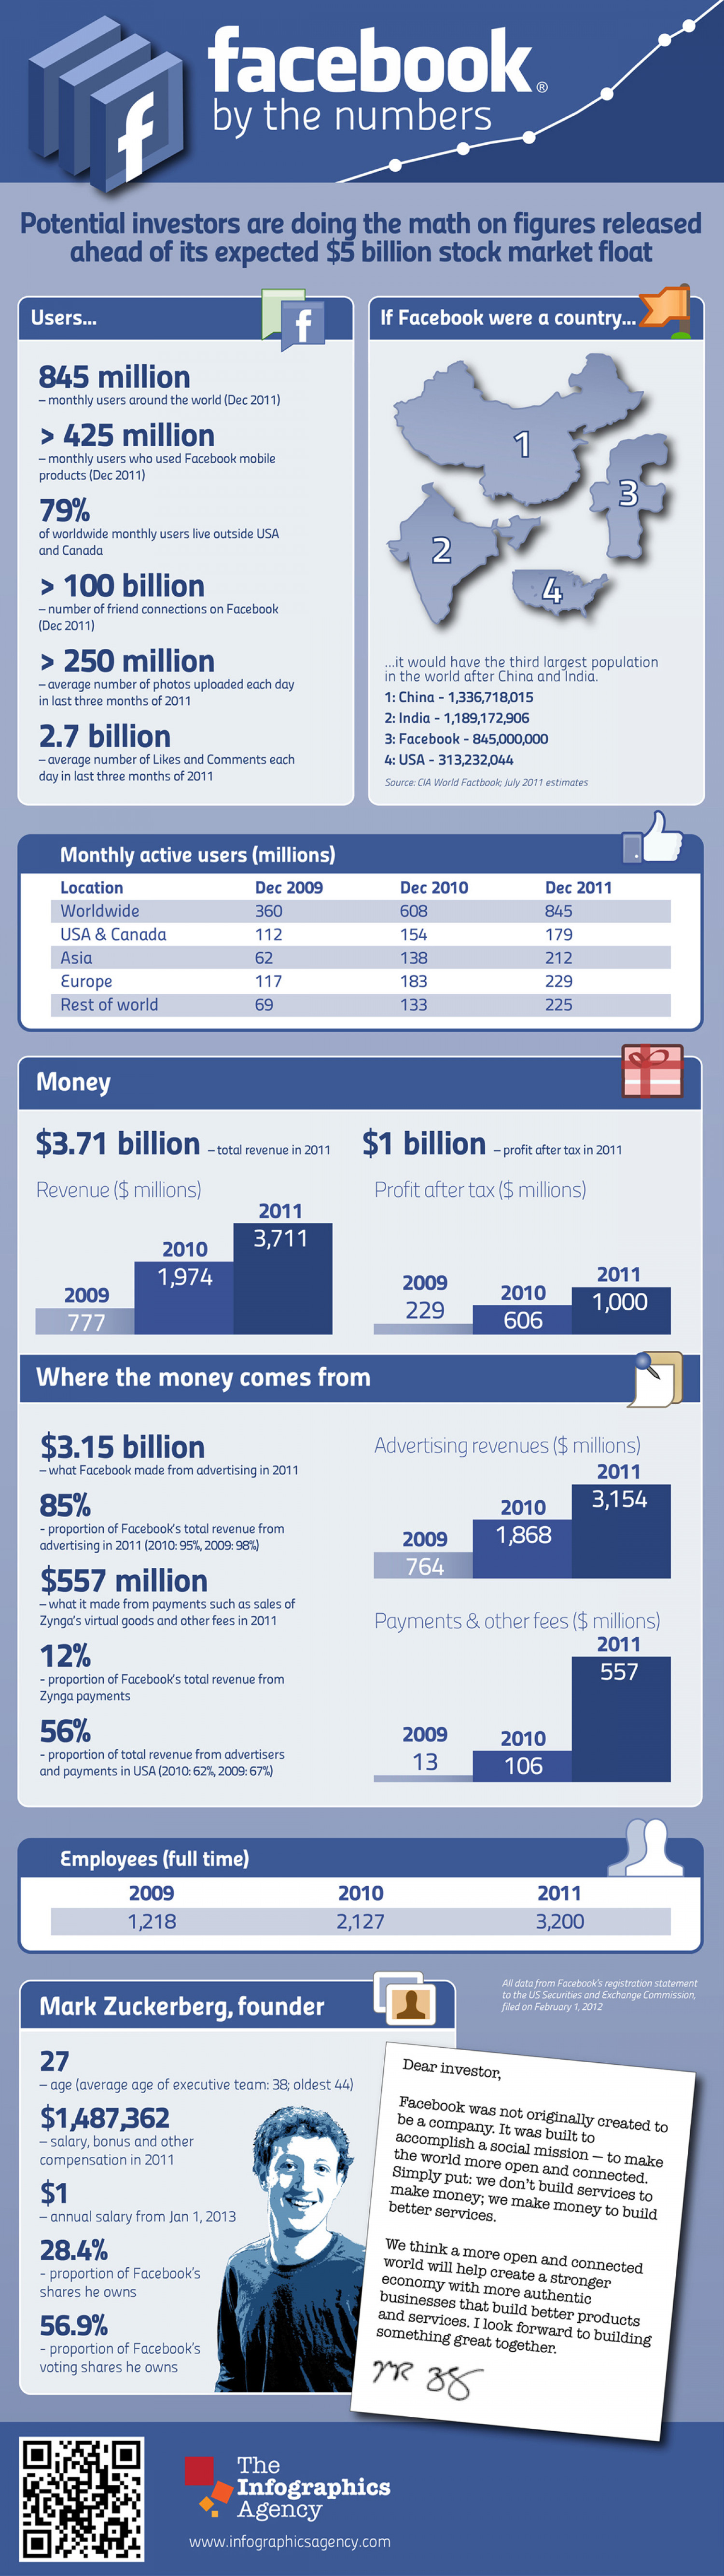 Facebook by the Numbers Infographic